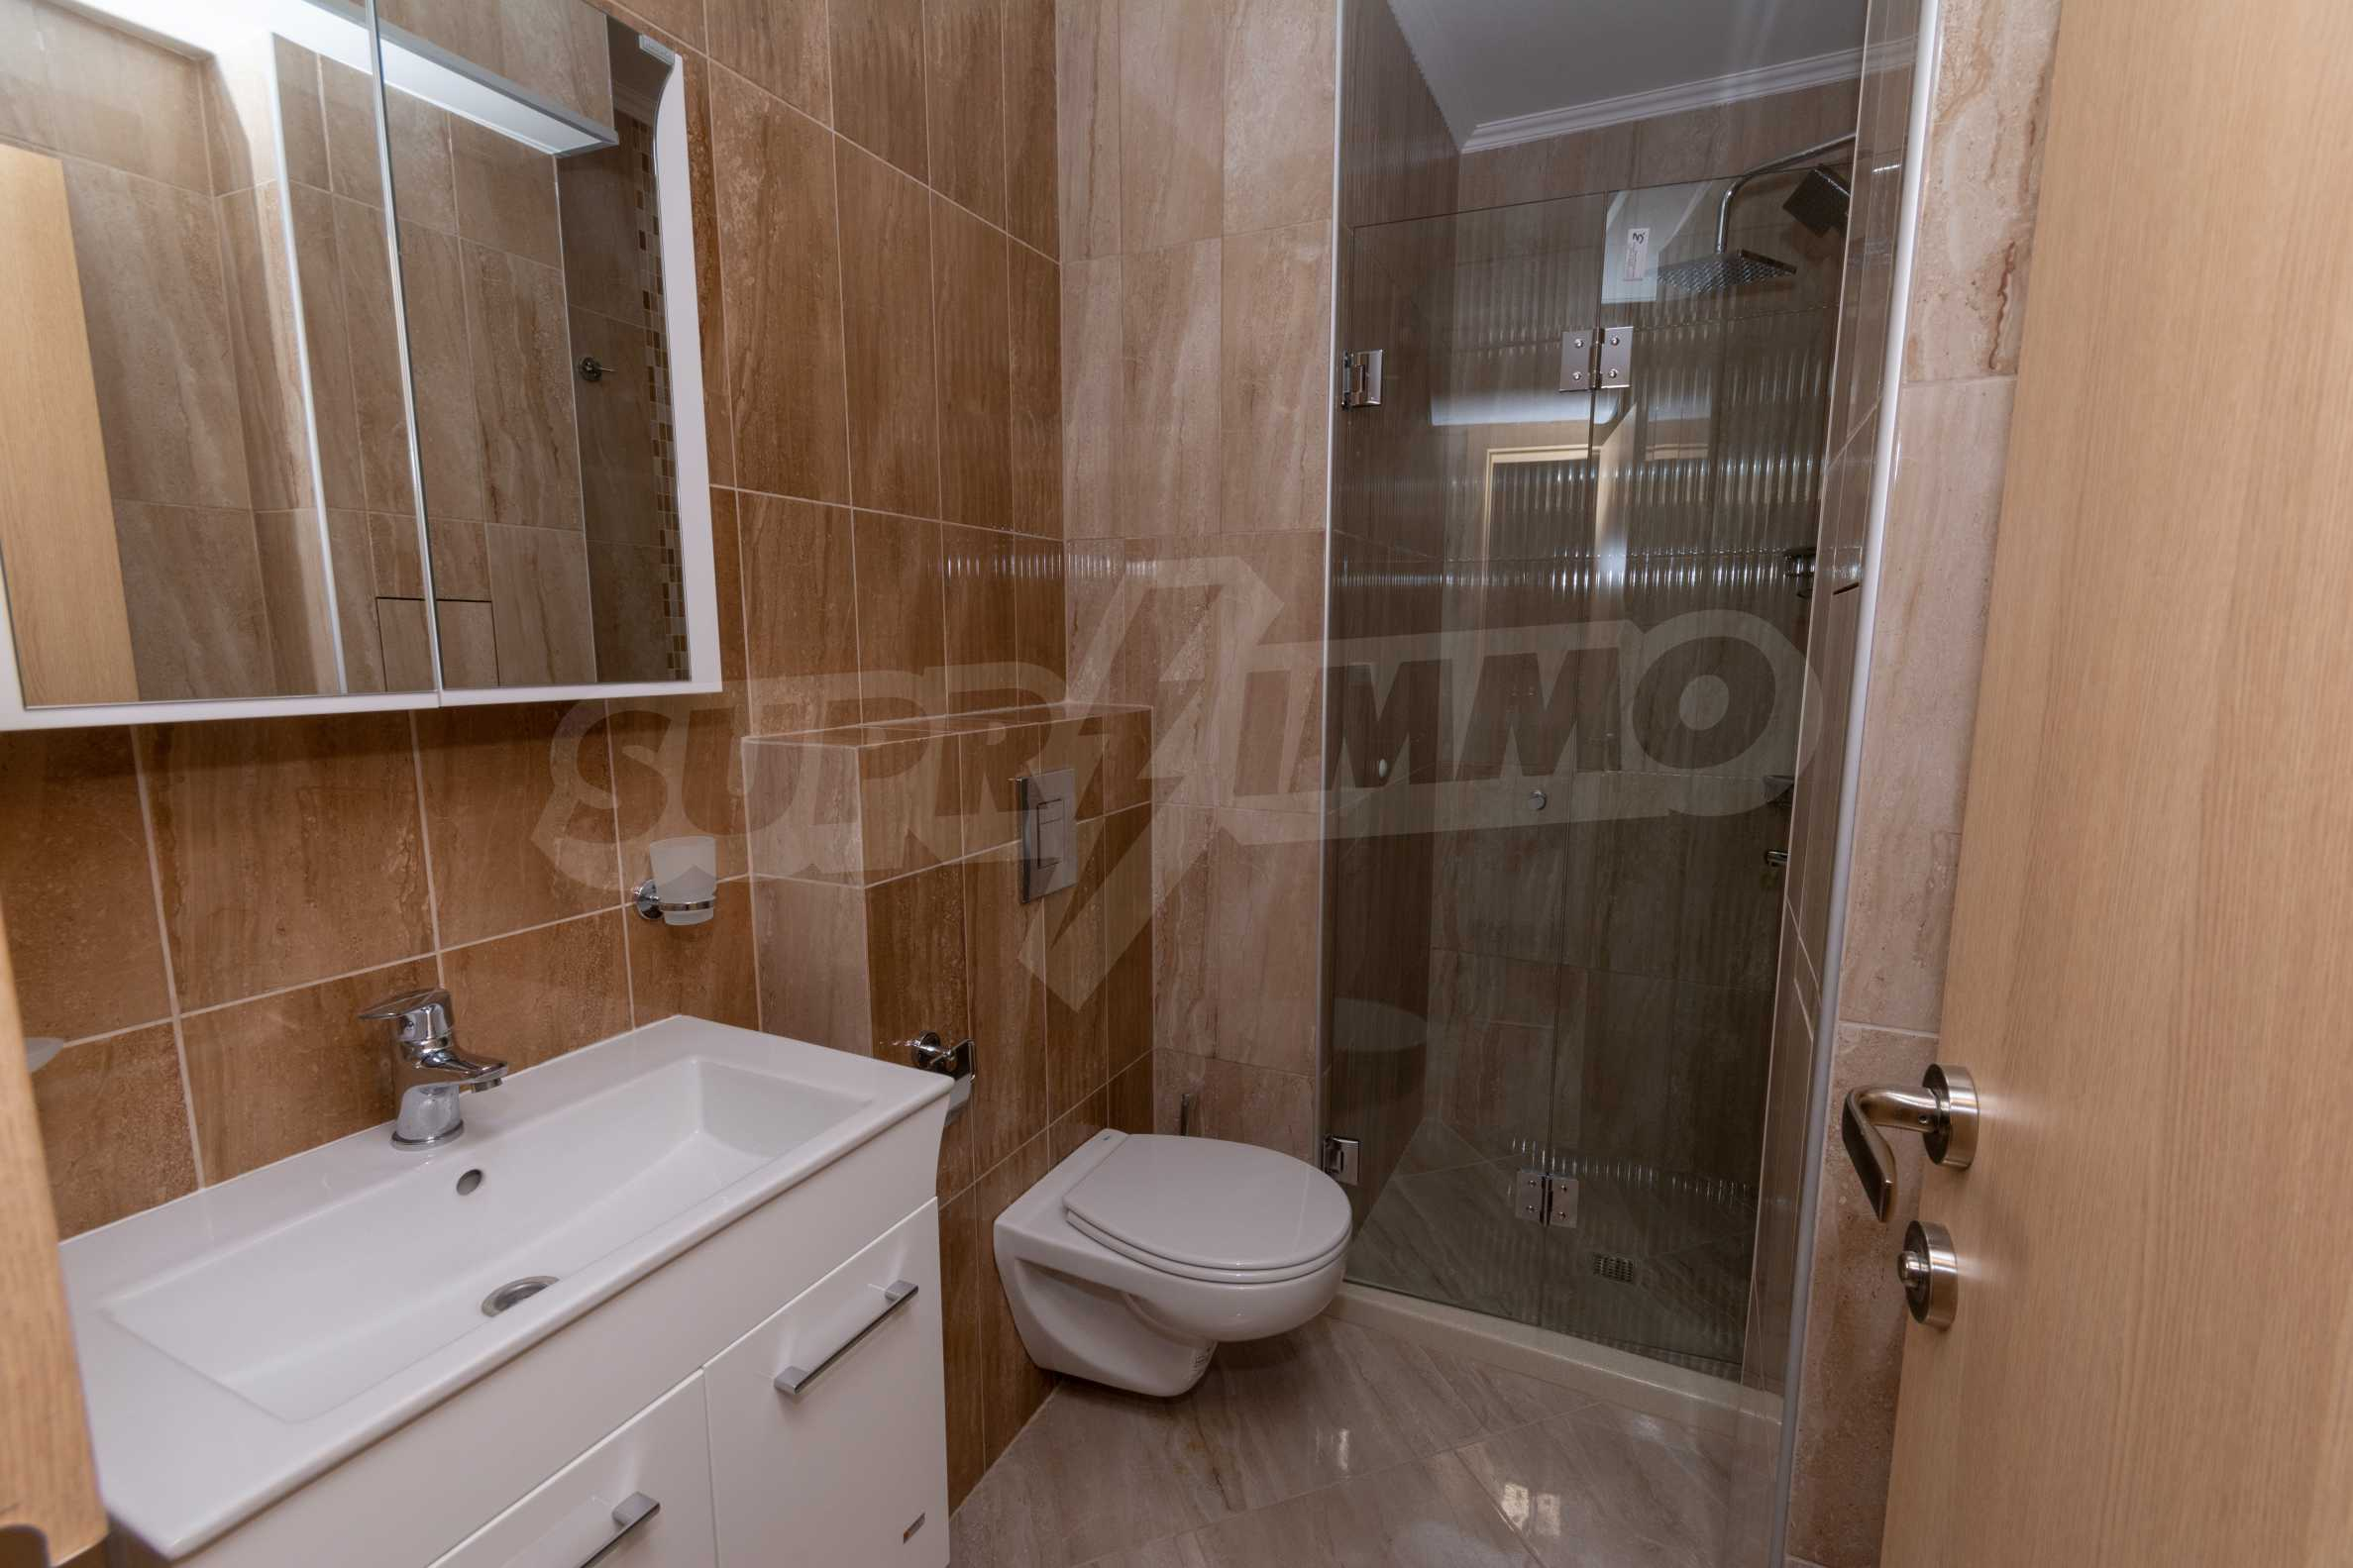 One bedroom apartment in a luxury residential building in a communicative location in Plovdiv 8